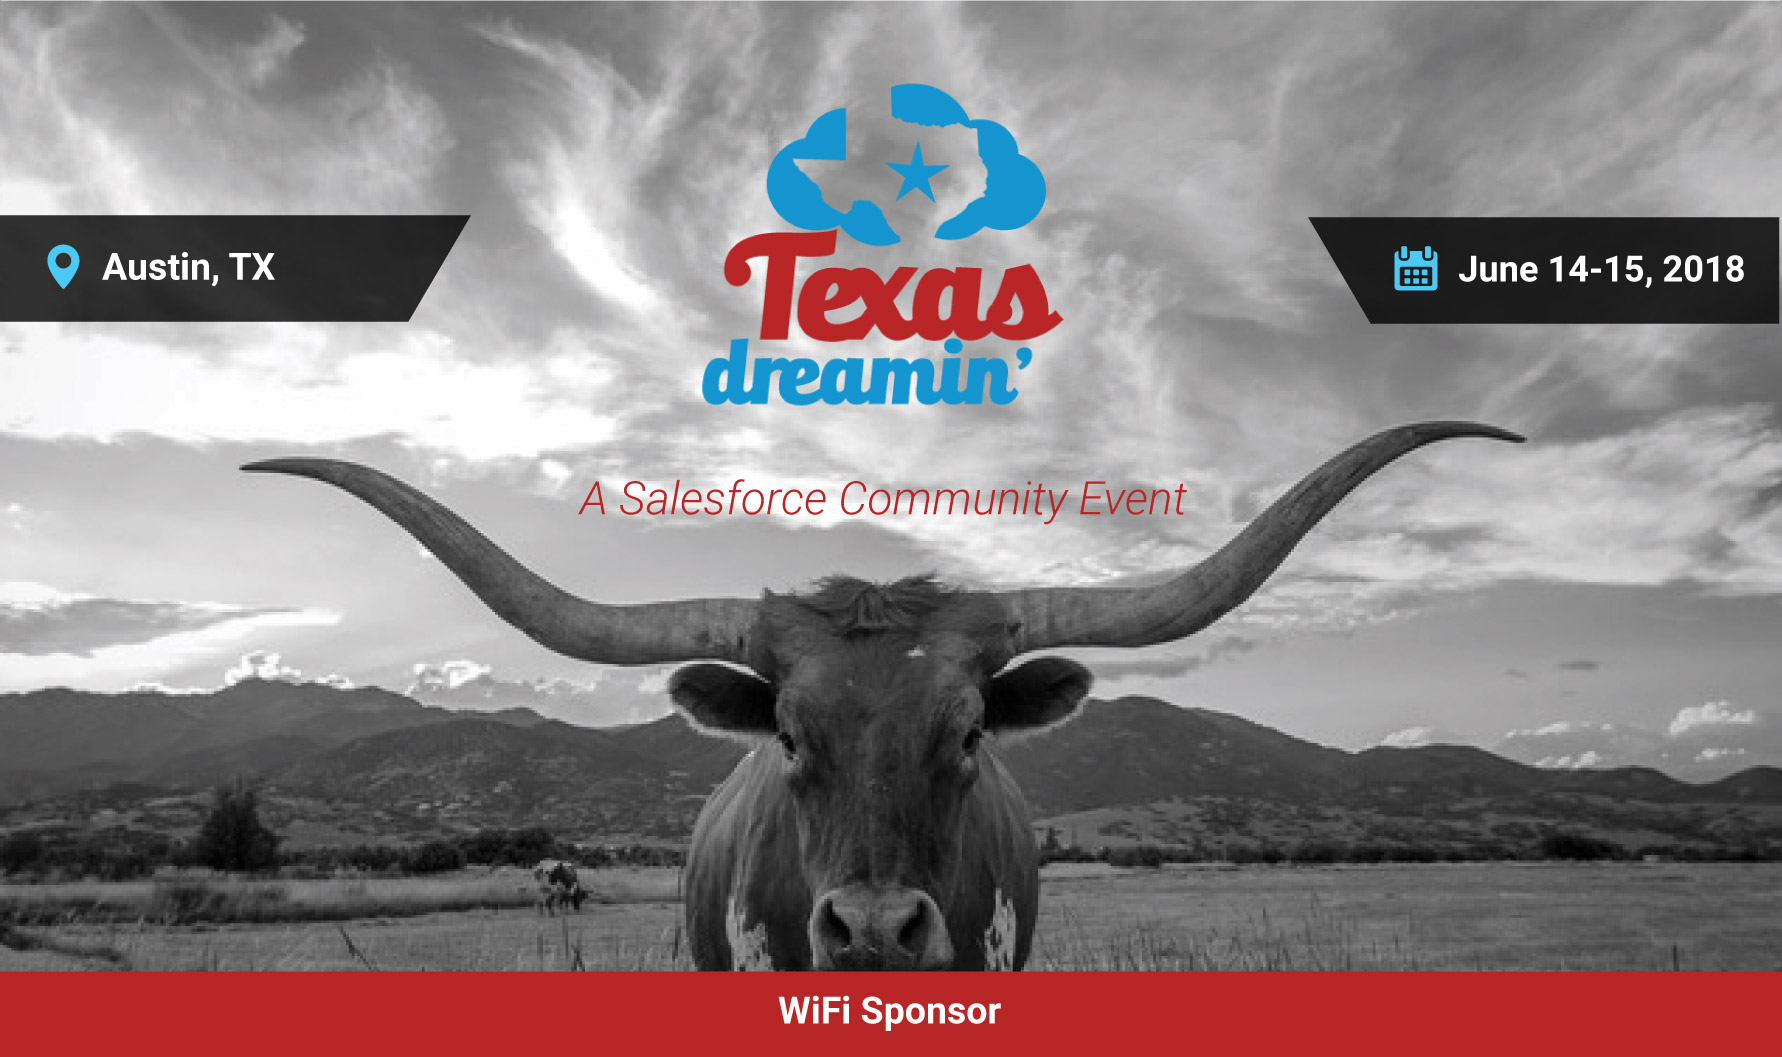 texas dreamin Demandblue